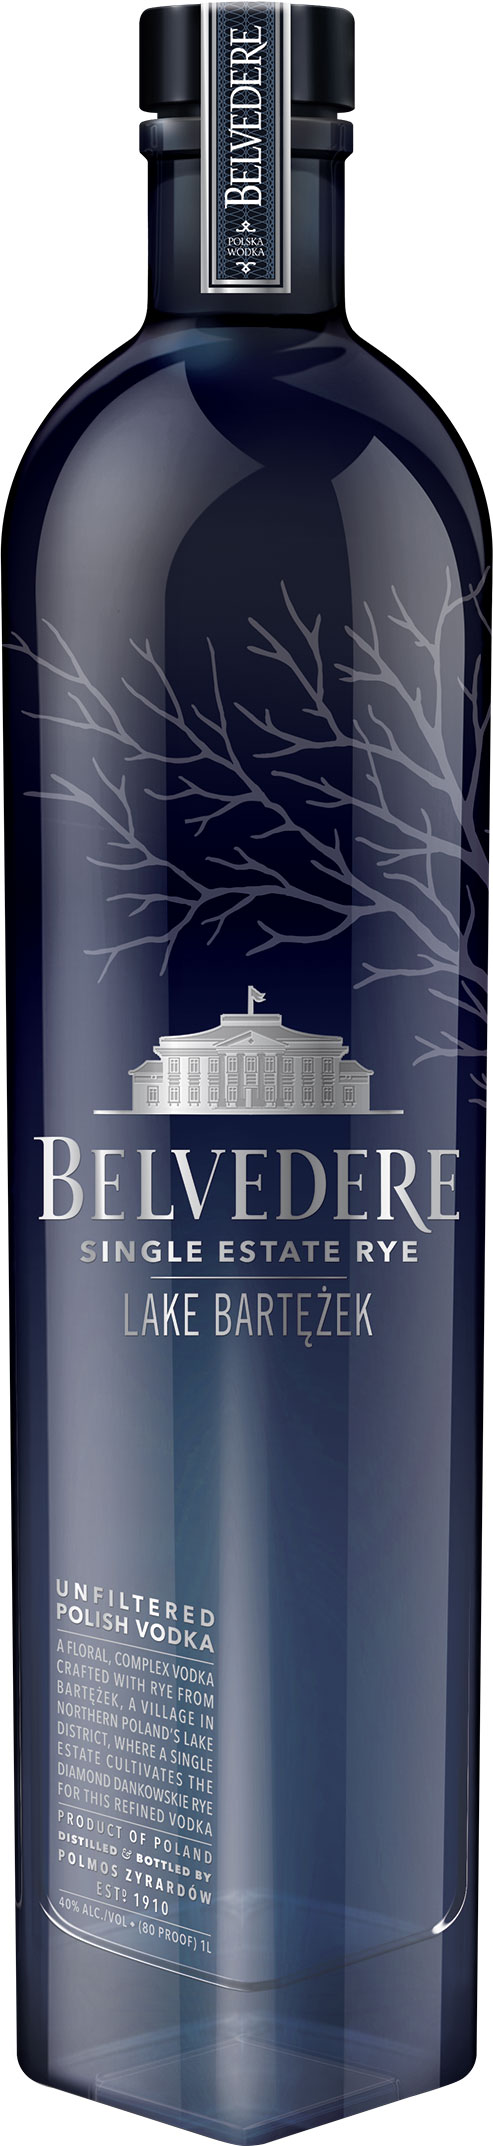 Belvedere Single Estate - Lake Bartezek Rye Vodka 70cl Bottle